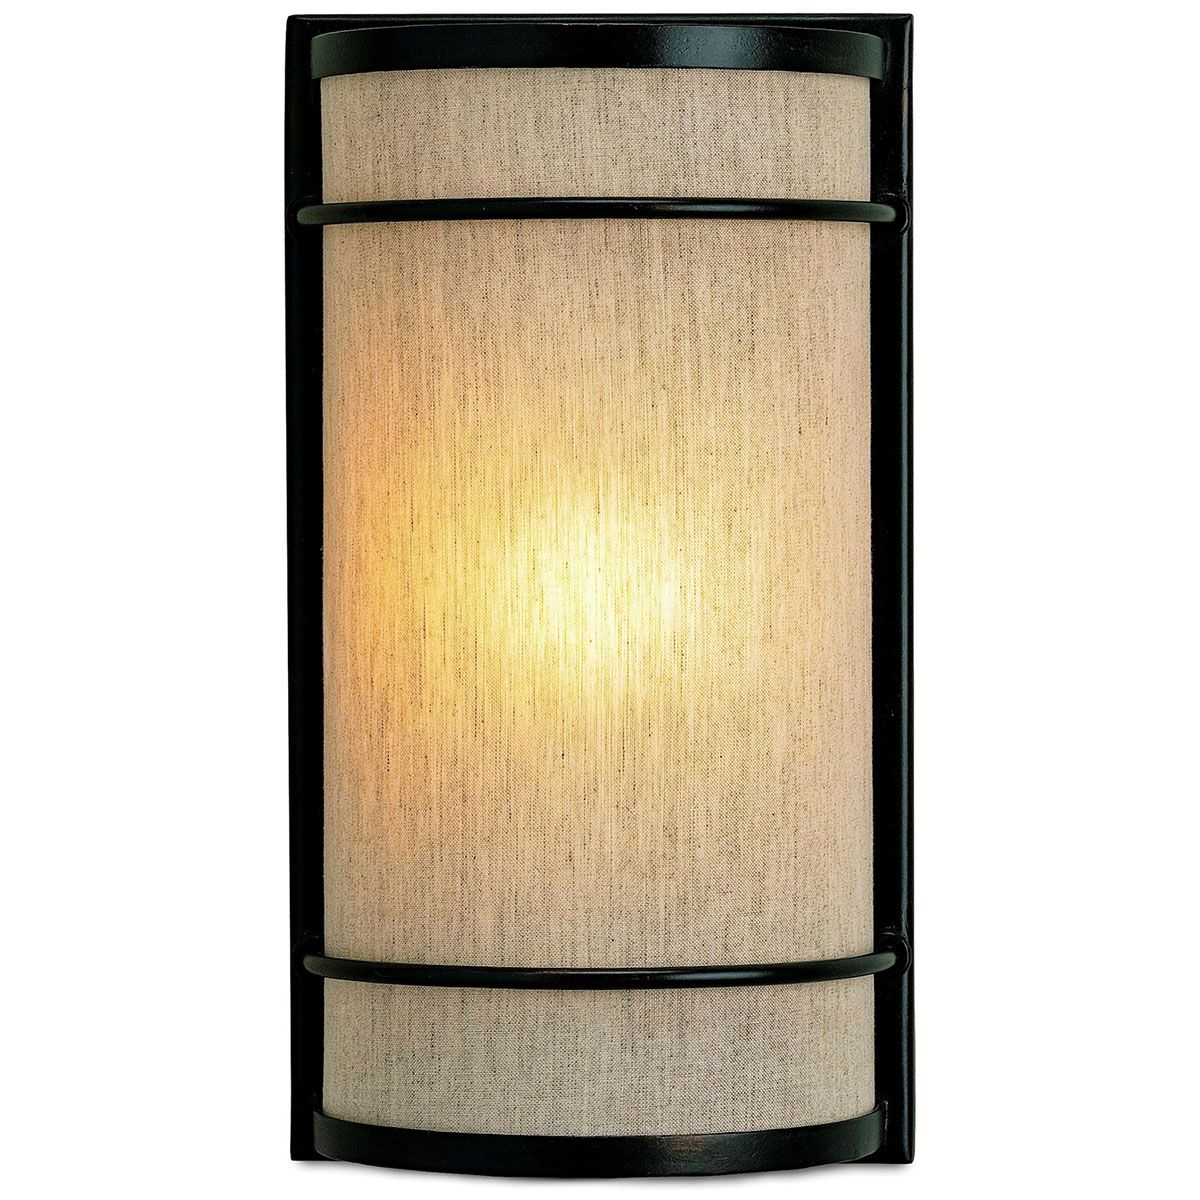 Currey & Company Dorset Wall Sconce CC-5907 | Currey and Company ...